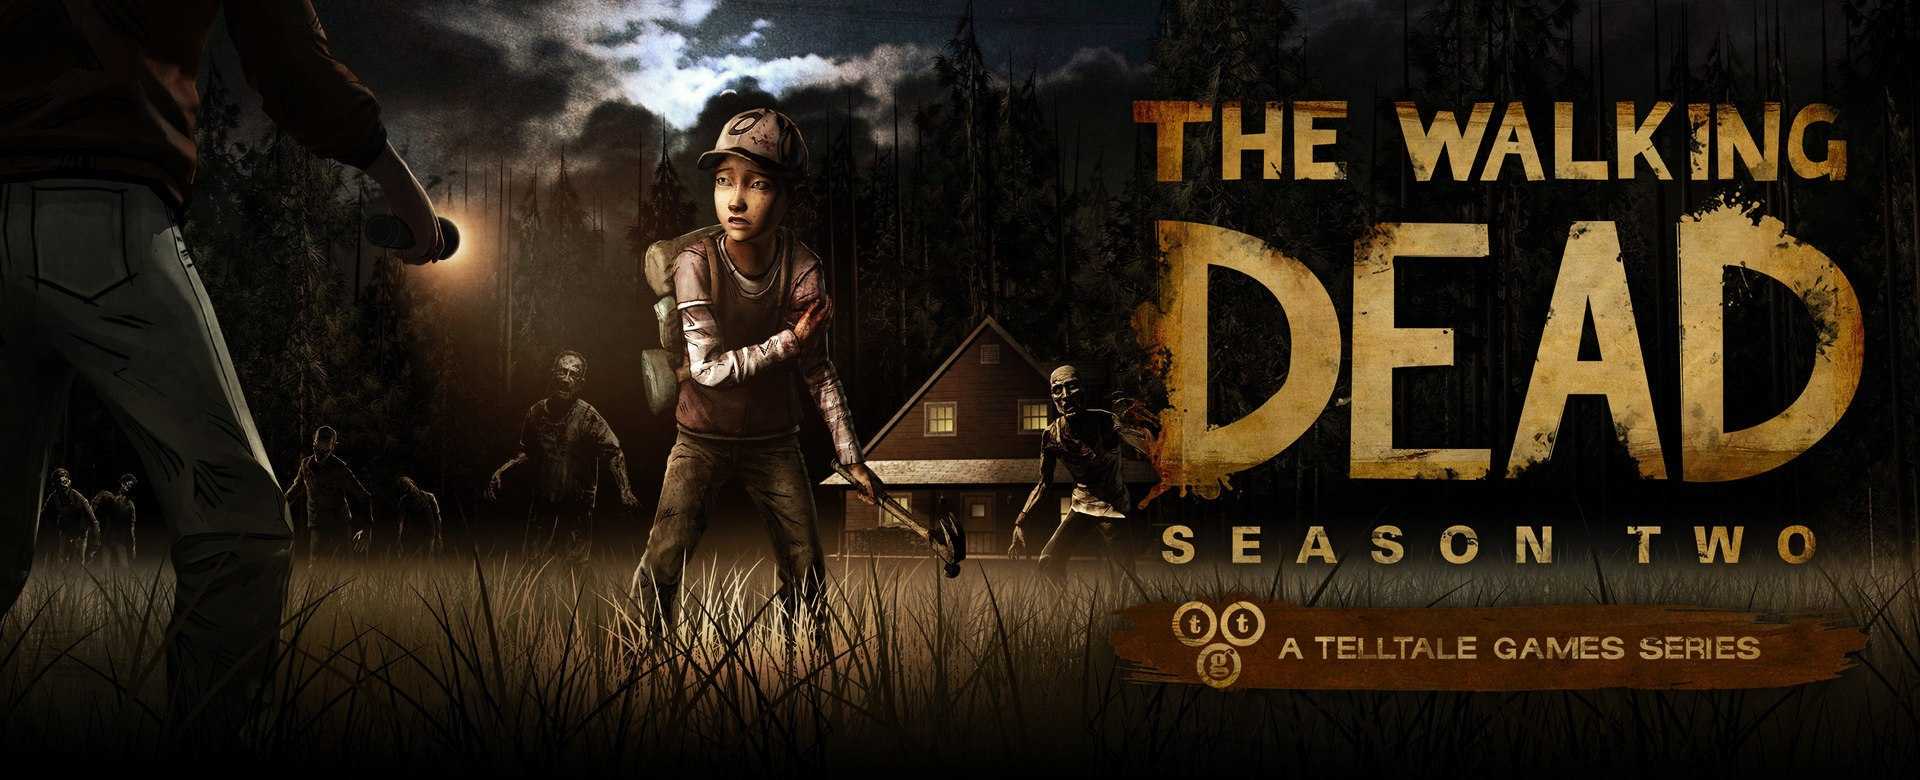 telltale-games-showcases-new-trailer-for-the-walking-dead-fantasy-turn-based-strategy-images-the-walking-dead-season-two-a-telltale-games-series-wallpaper